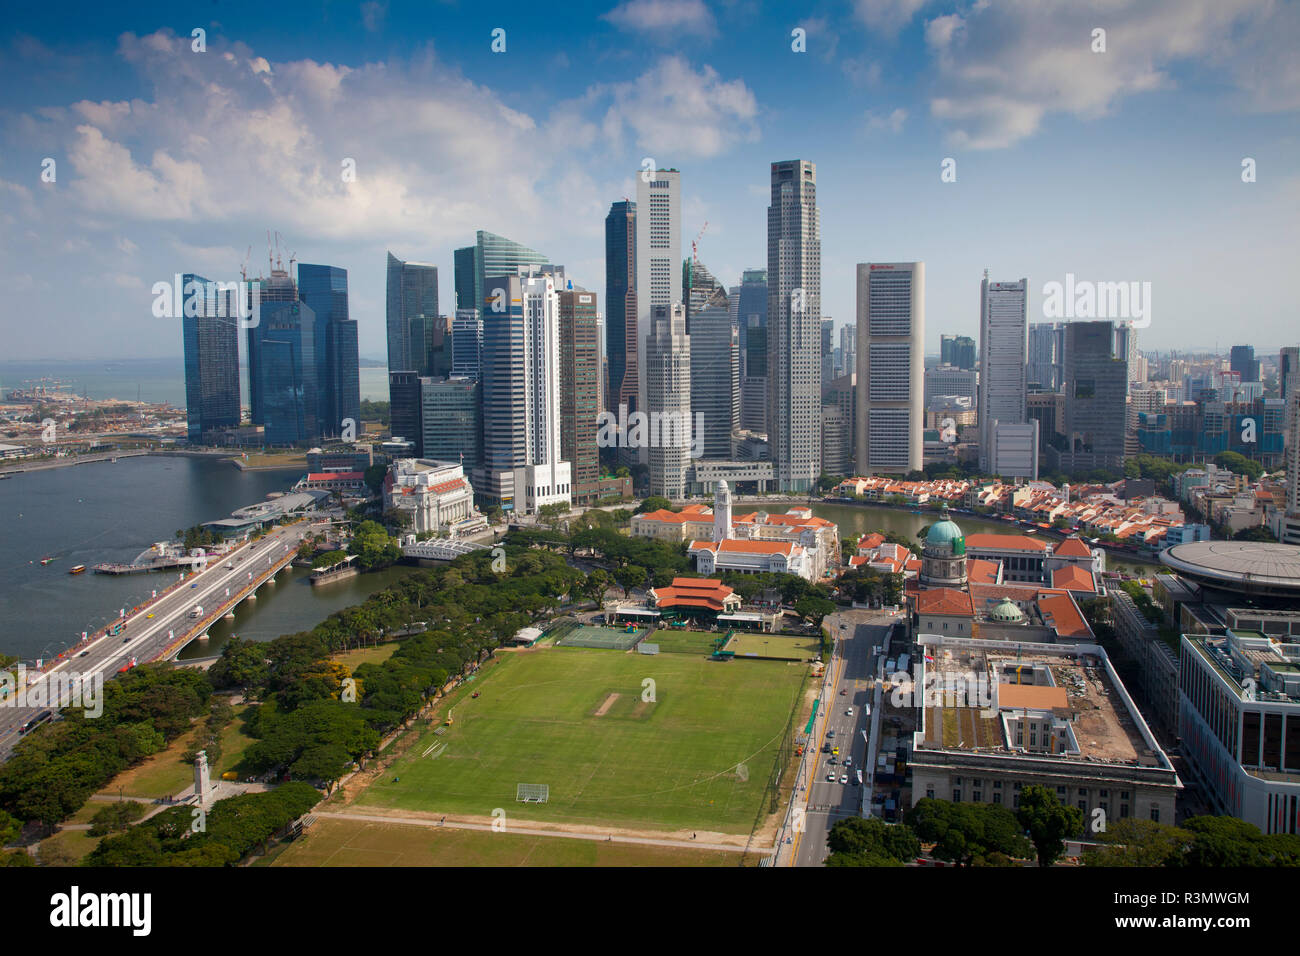 Singapore. Park and city overview. Credit as: Jim Zuckerman / Jaynes Gallery / DanitaDelimont.com - Stock Image